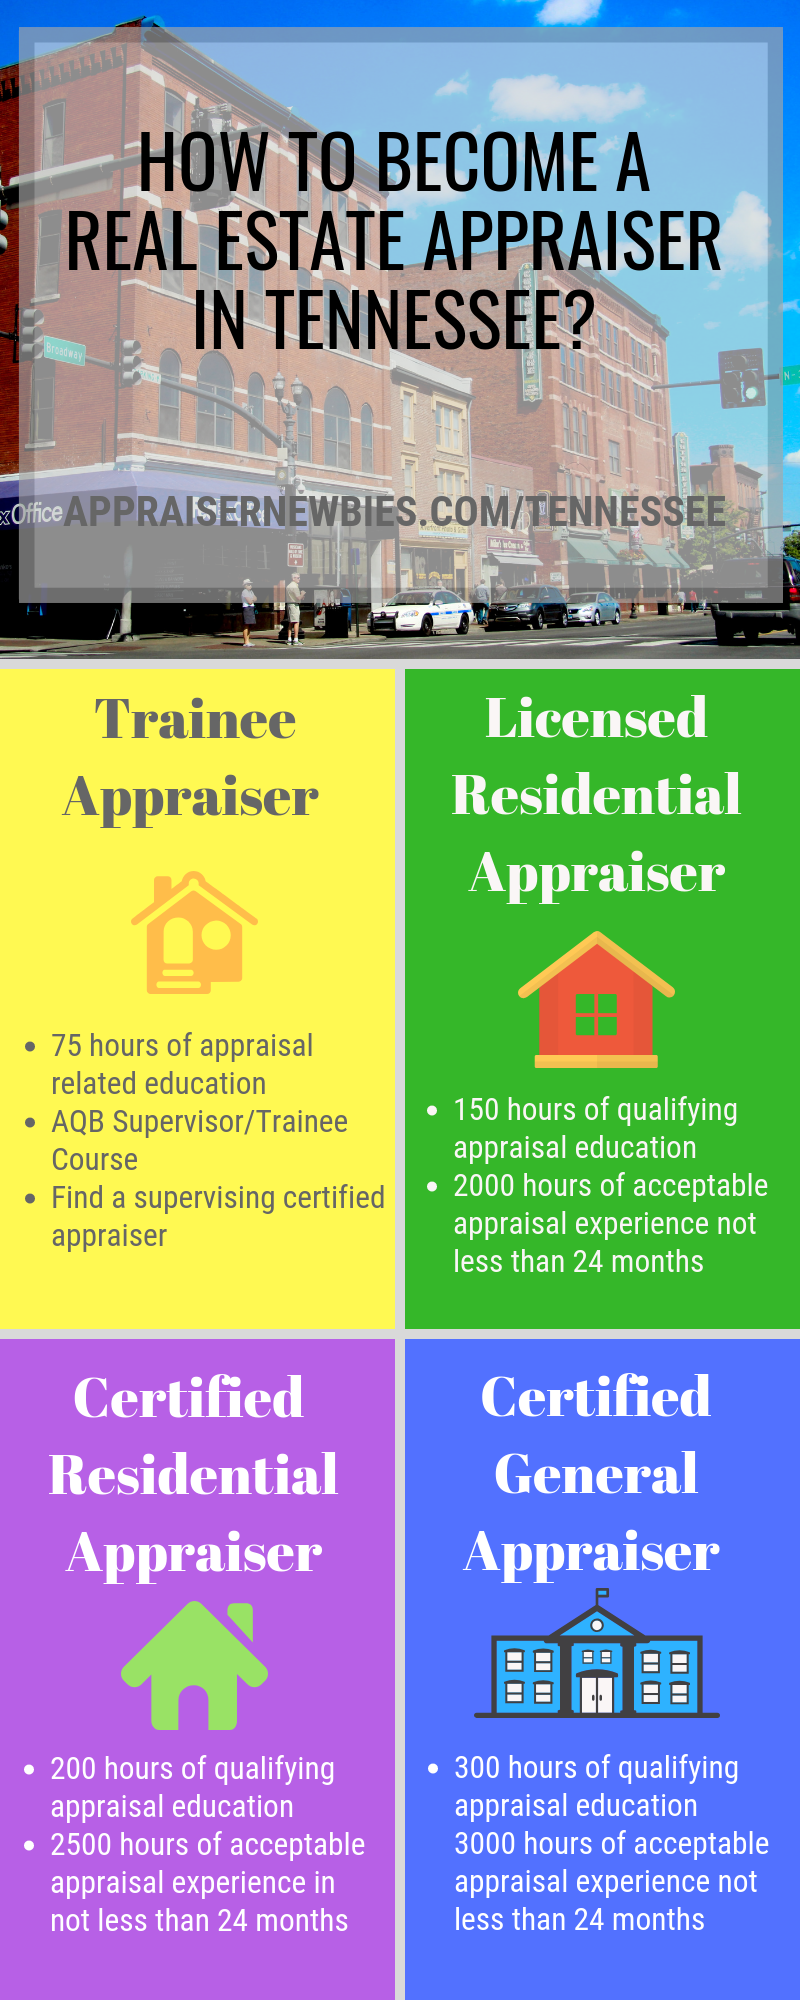 How To Become A Real Estate Appraiser In Tennessee Real Estate License How To Become Work Experience